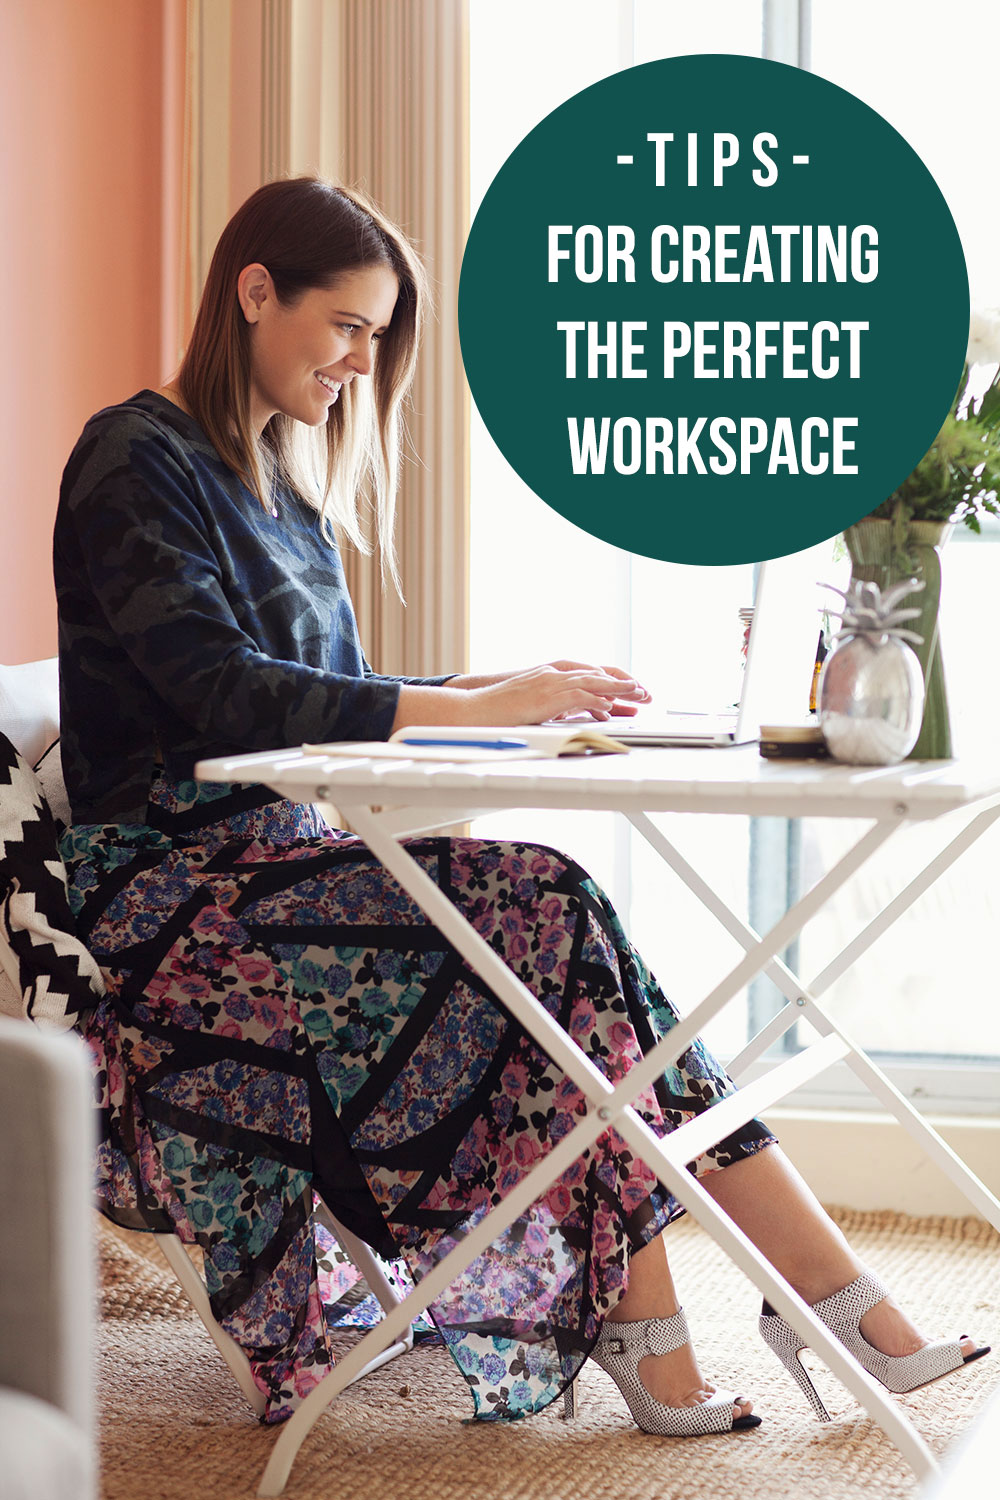 Tips For Creating The Perfect Workspace by Jaharn Giles from Mister Weekender